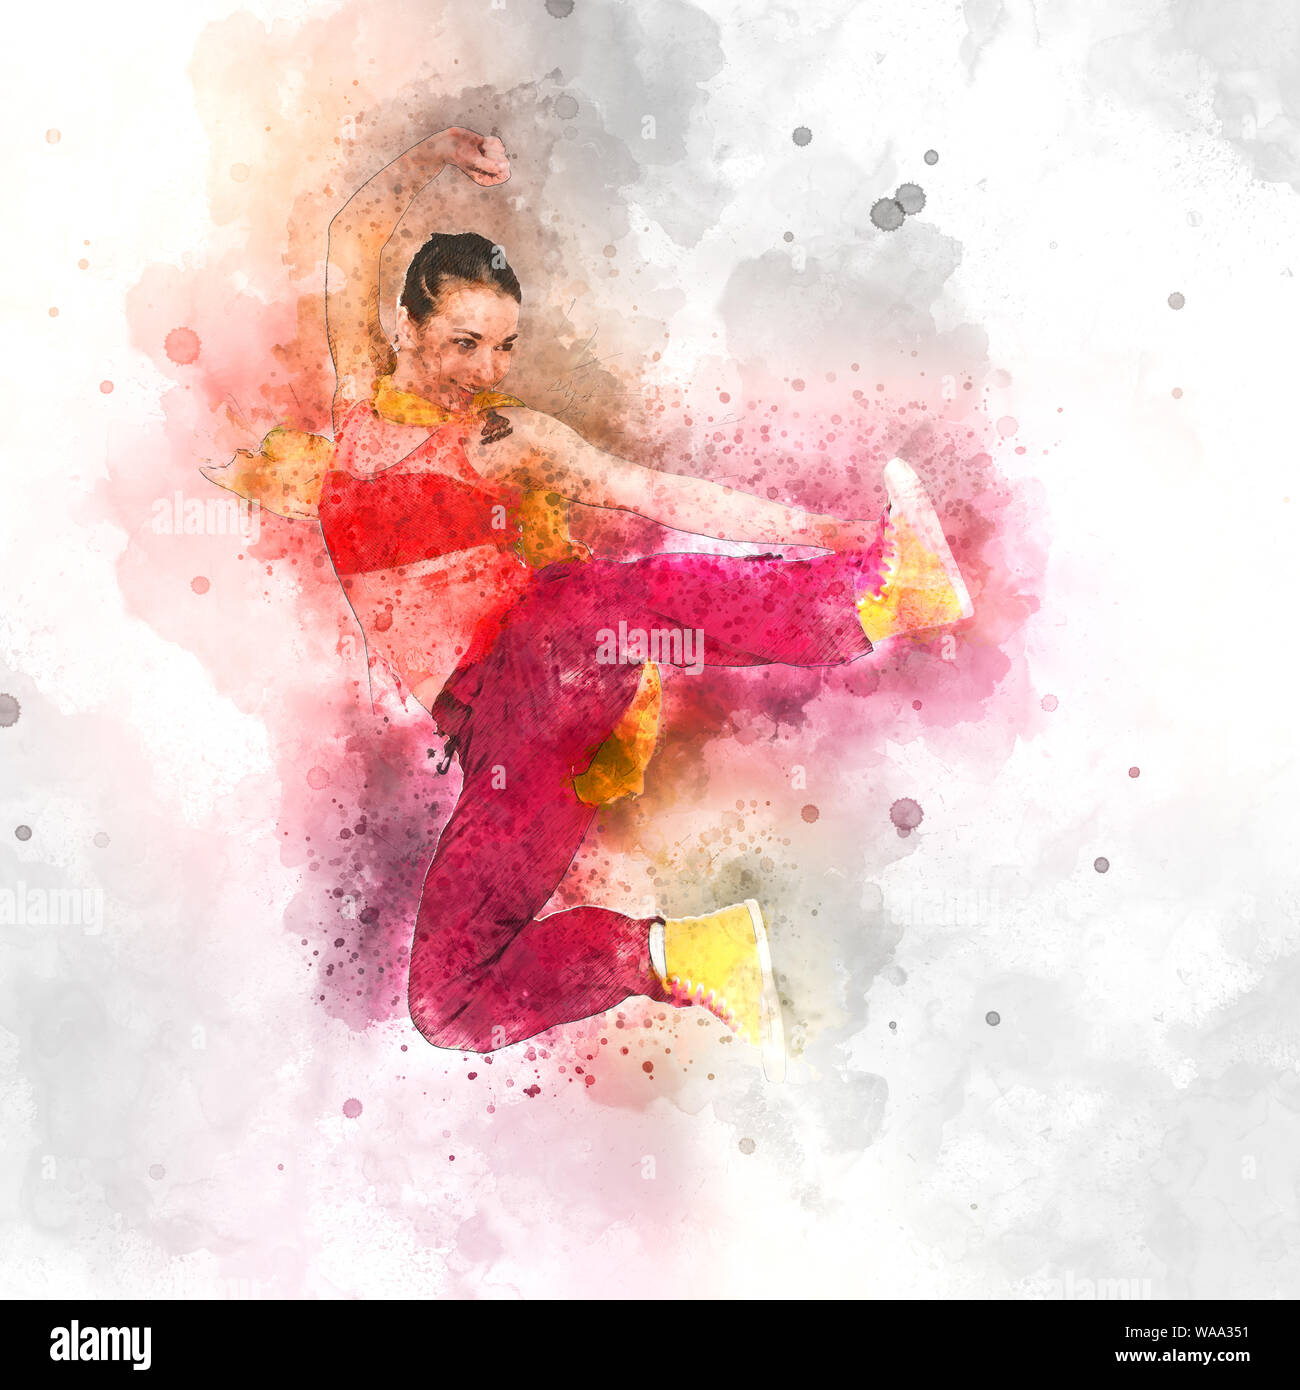 Digitally enhanced image of a Female Hip hop Dancer Stock Photo